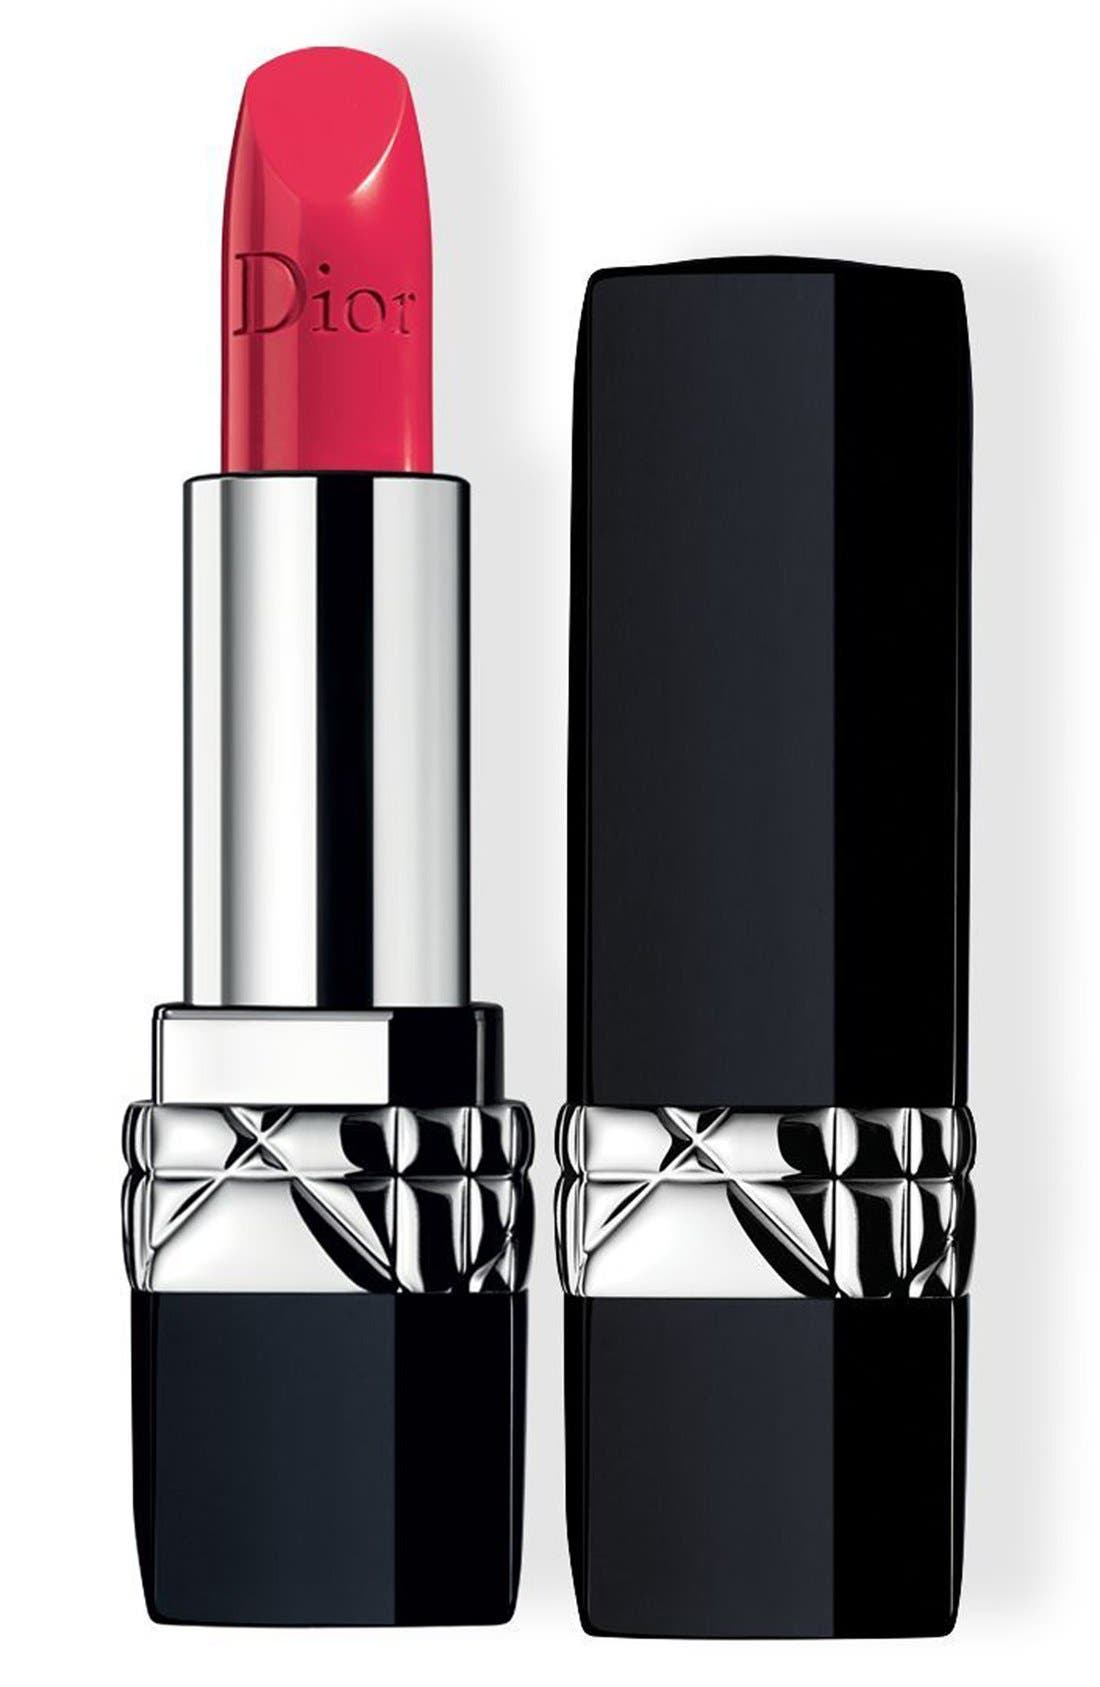 Dior Couture Color Rouge Dior Lipstick - 775 Darling